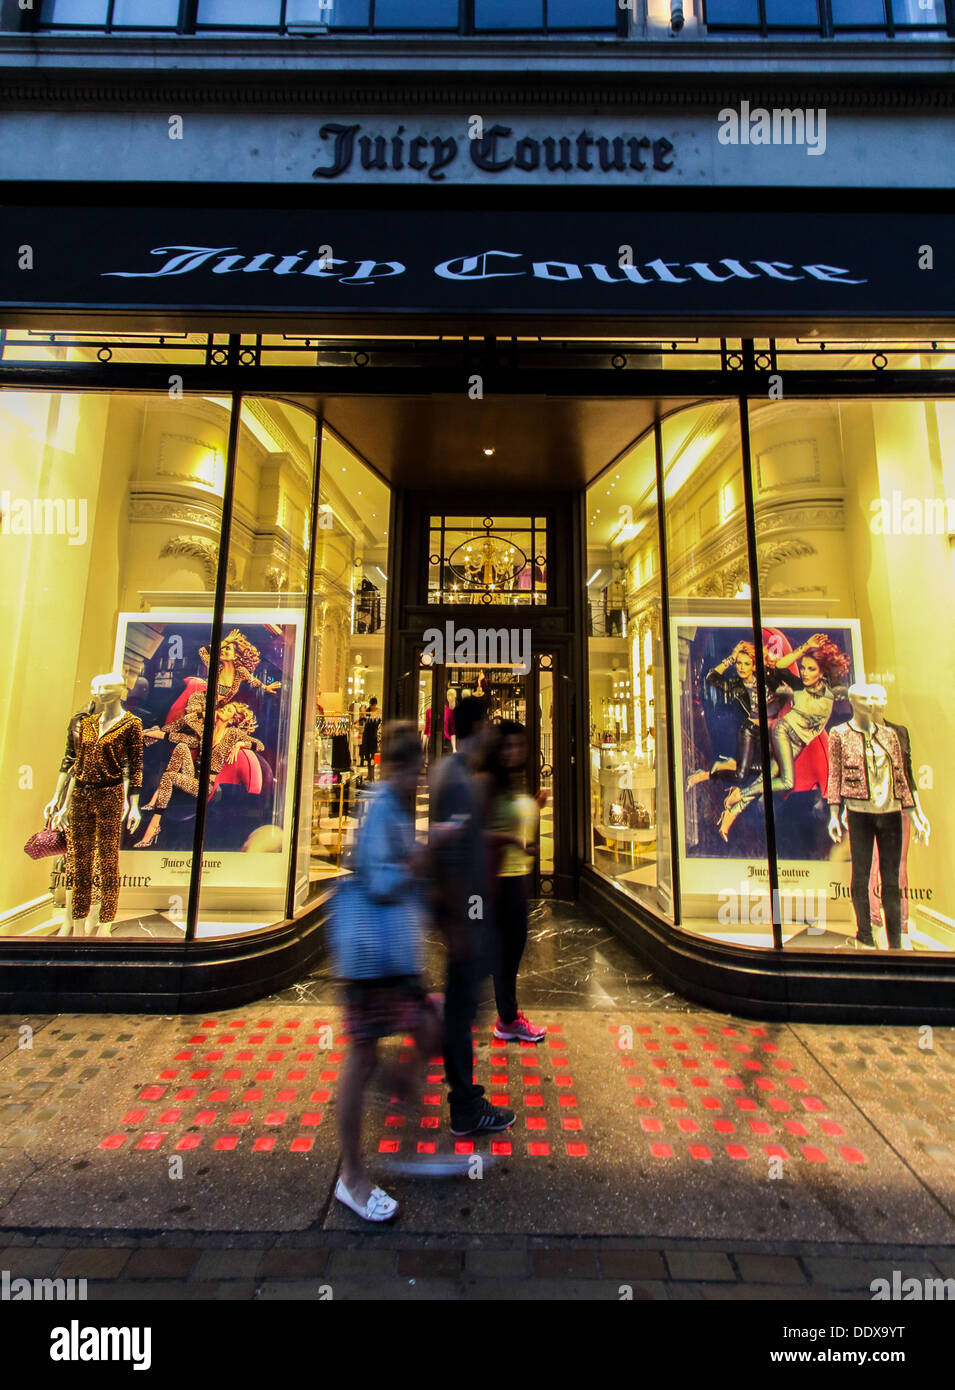 Juicy Couture shop front  in Regents Street, London, UK - Stock Image